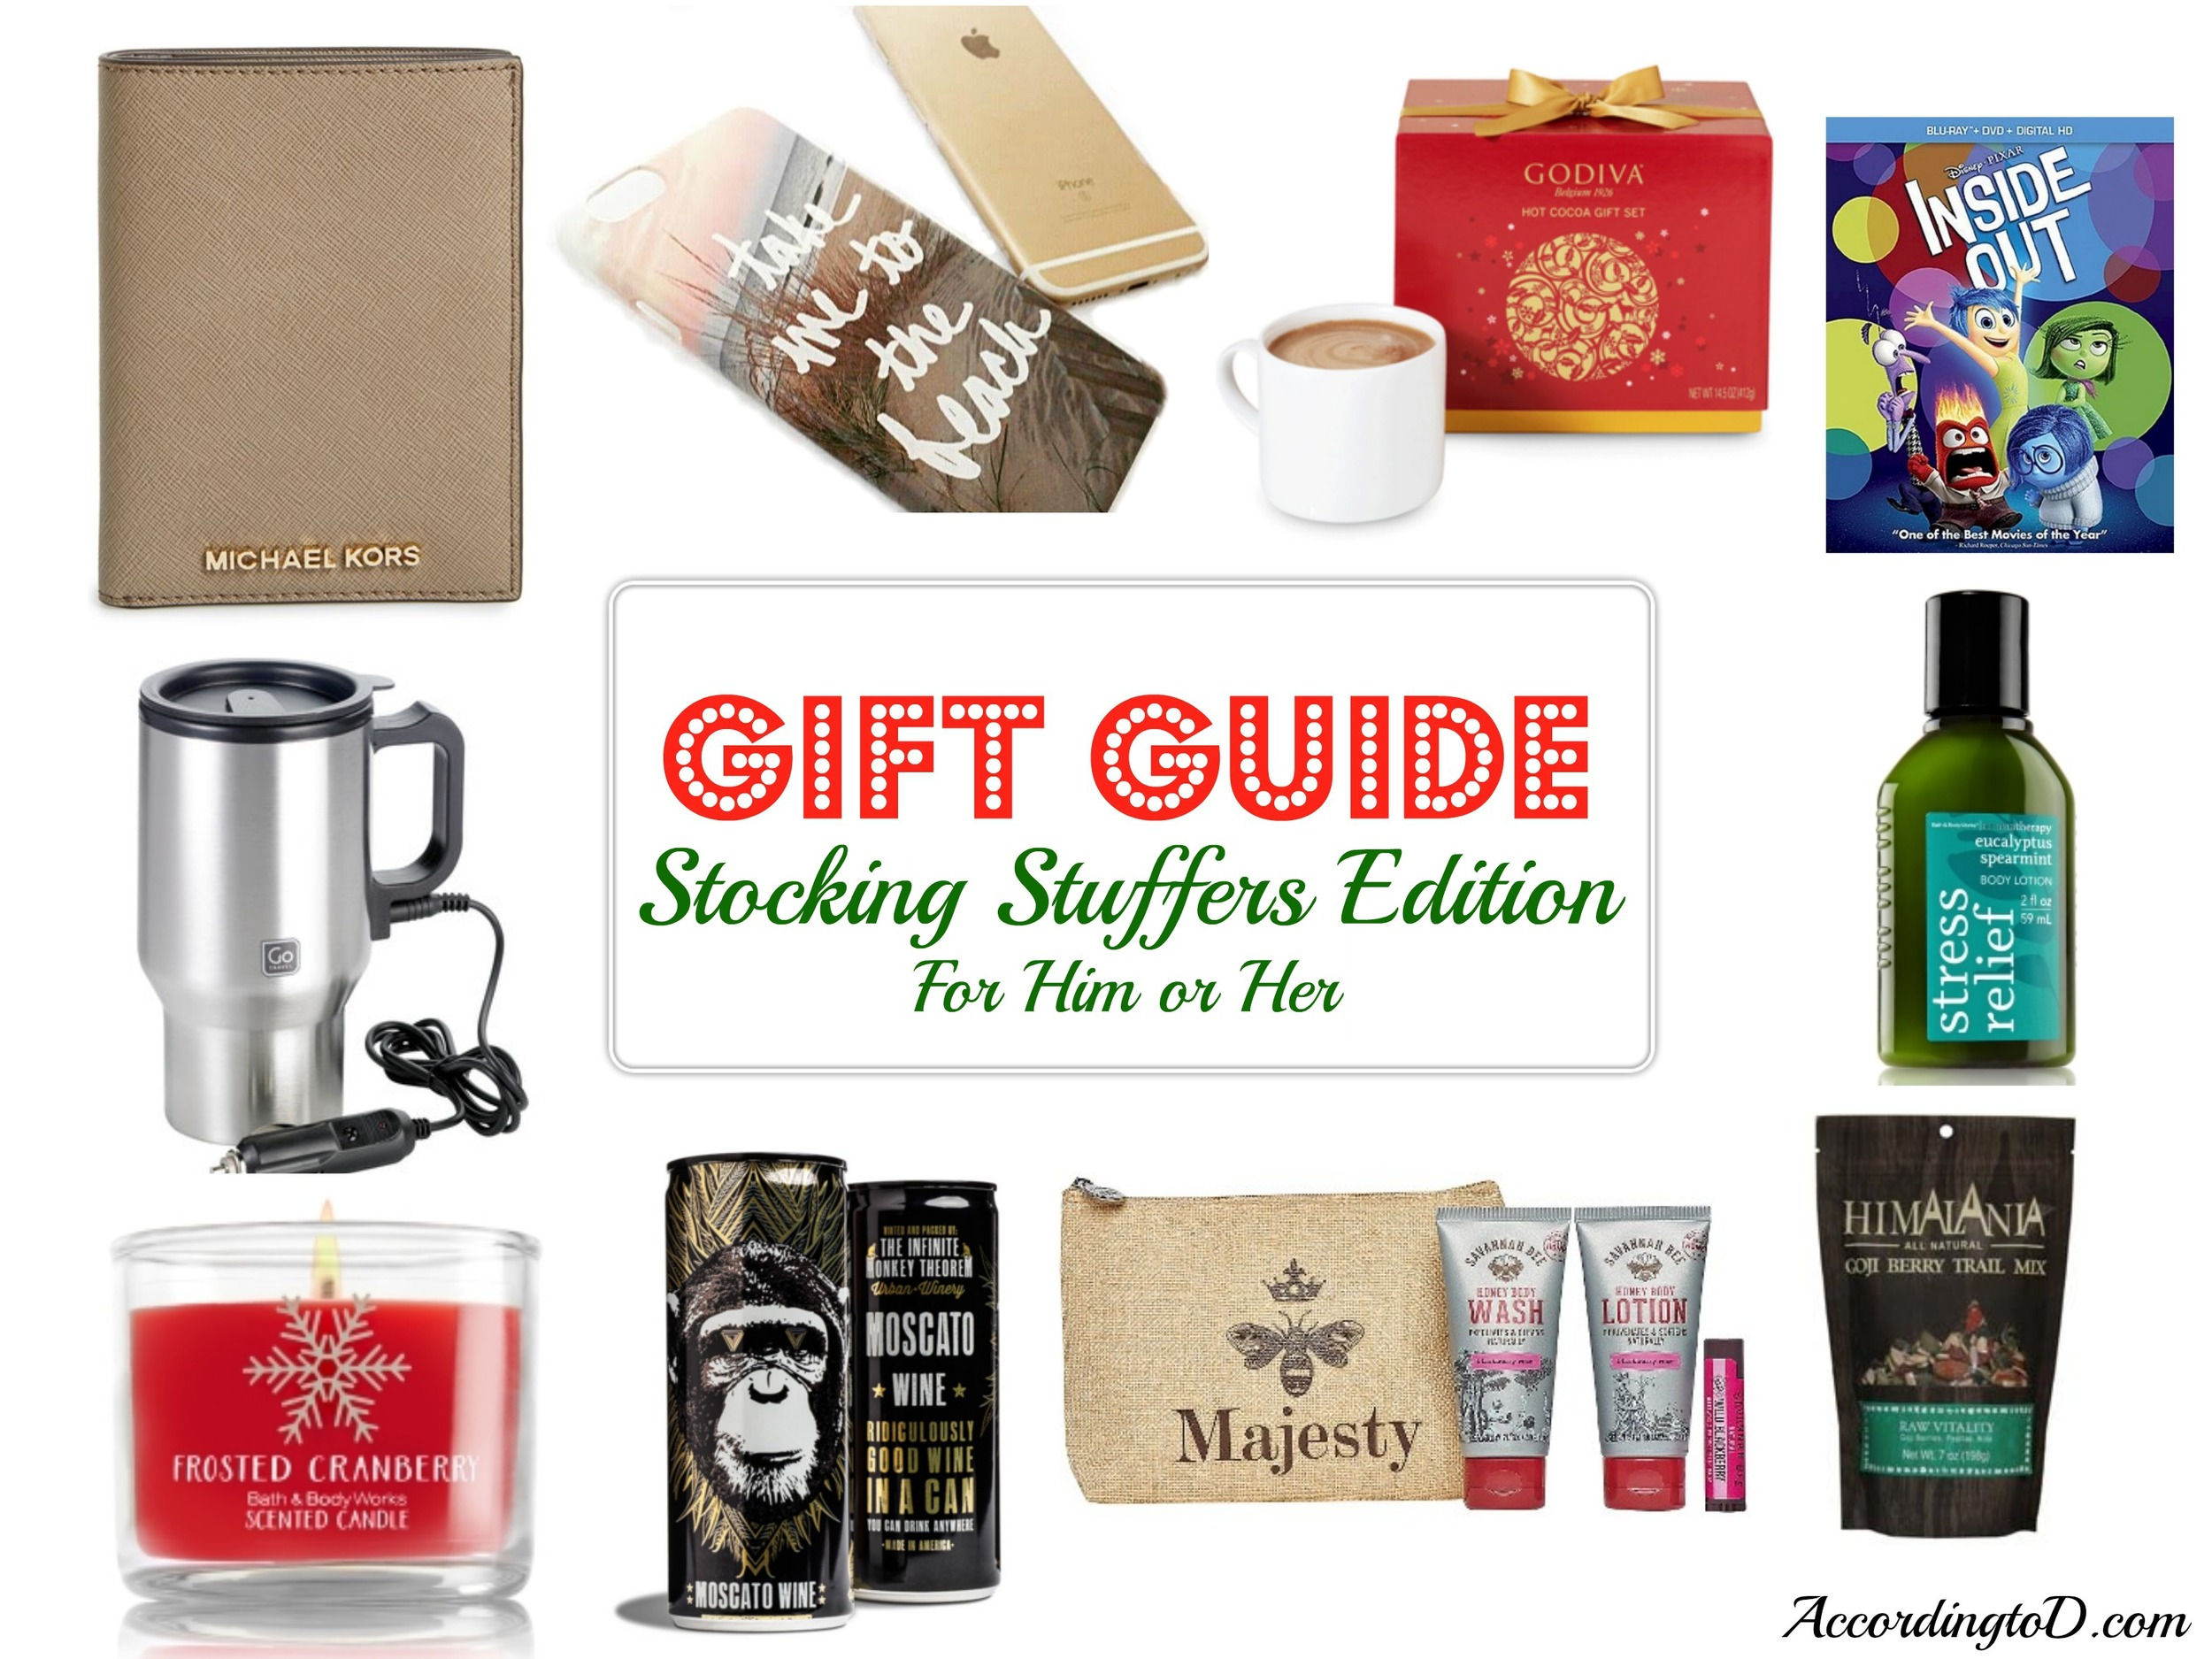 Stocking Stuffers Gift Guide Unisex Gifts For Him Or Her A Giveaway According To D